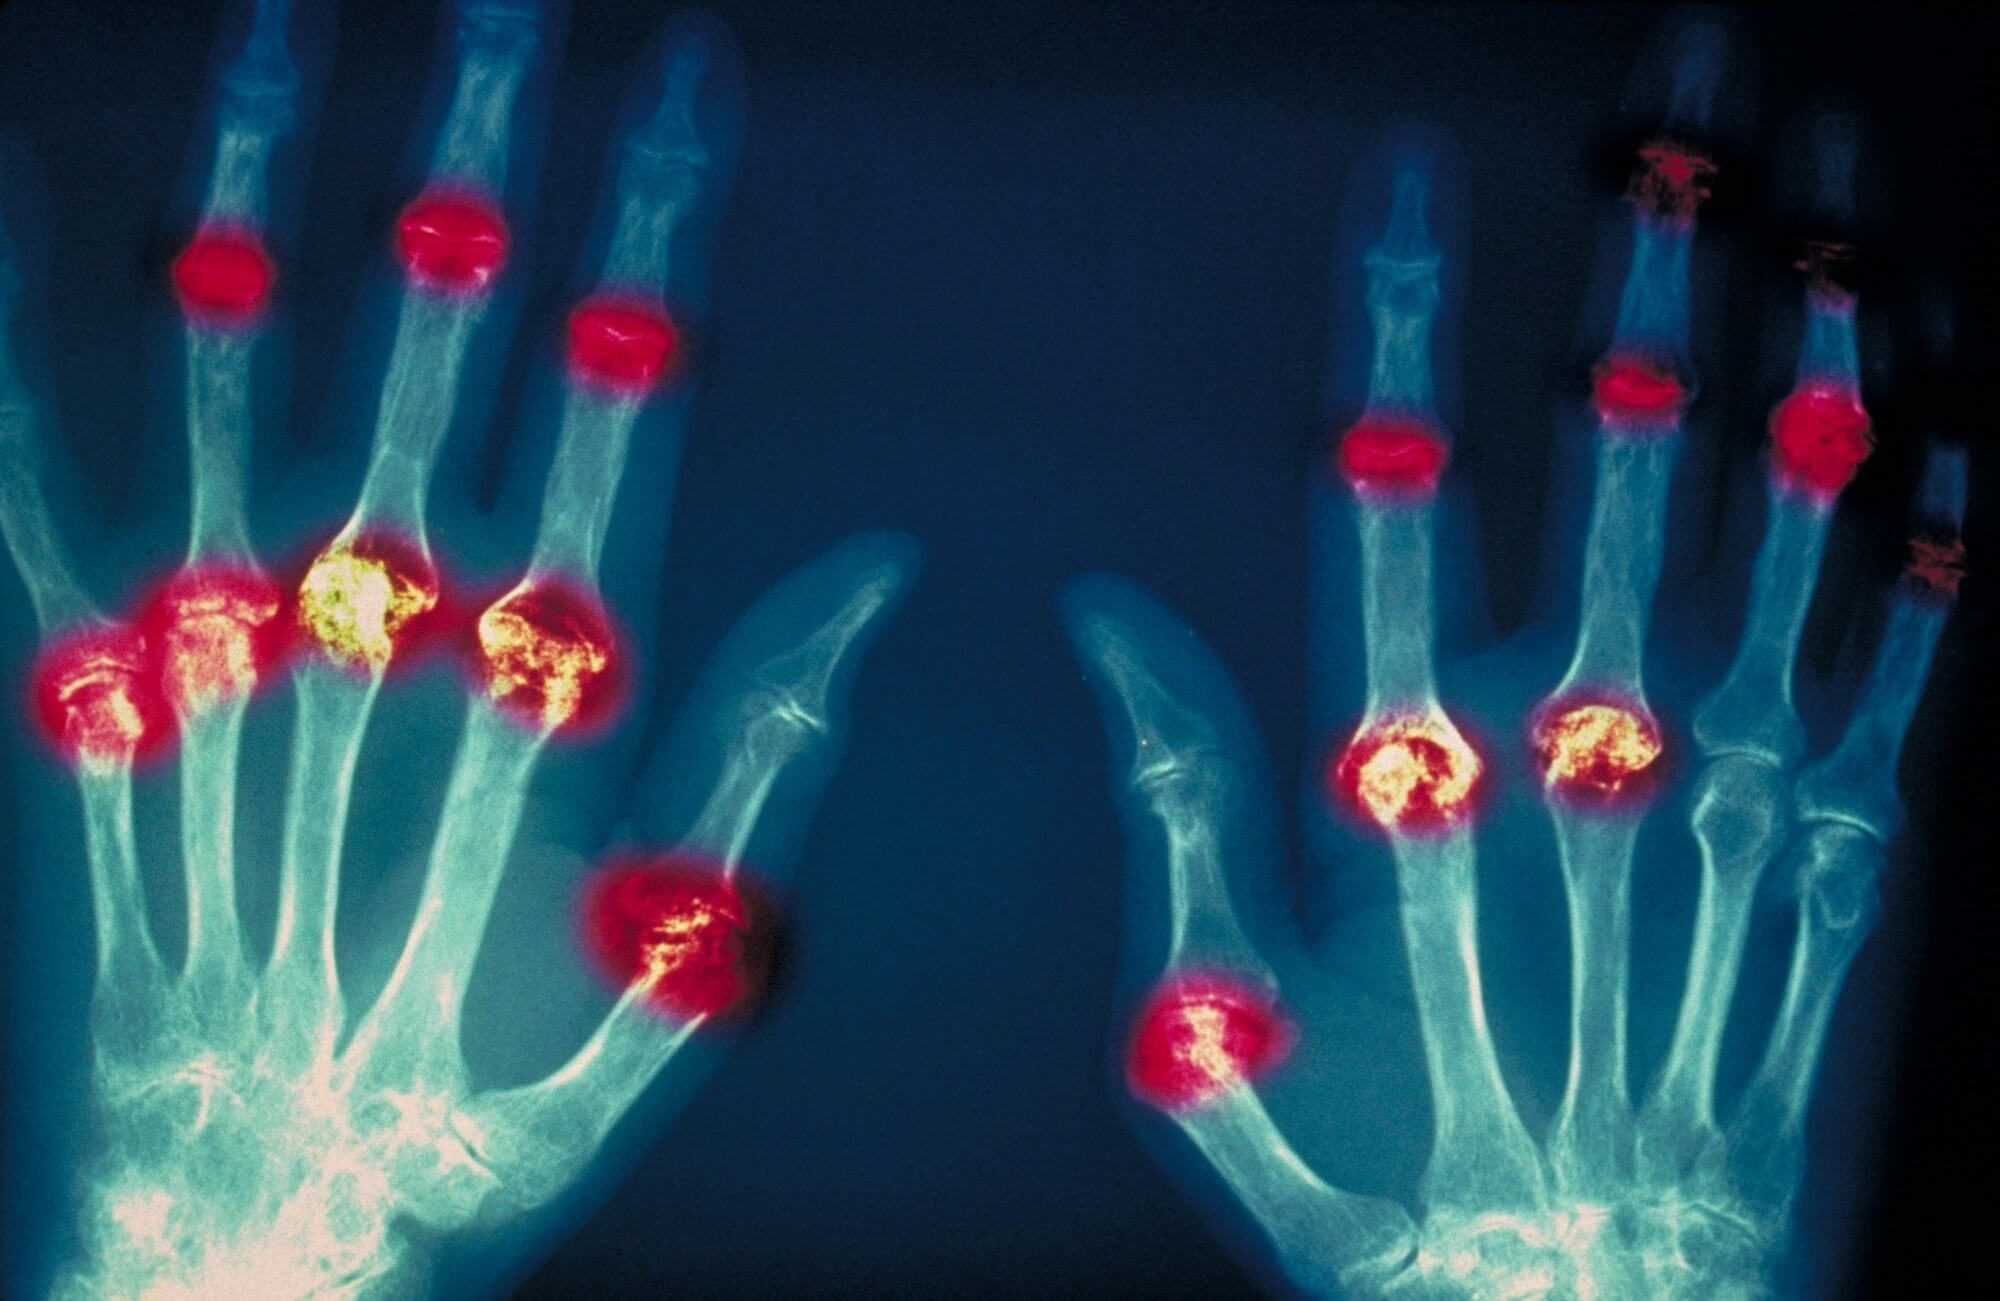 Intra-articular Steroid Injections With Tofacitinib Effective for Early RA With Rapid Radiographic Progression